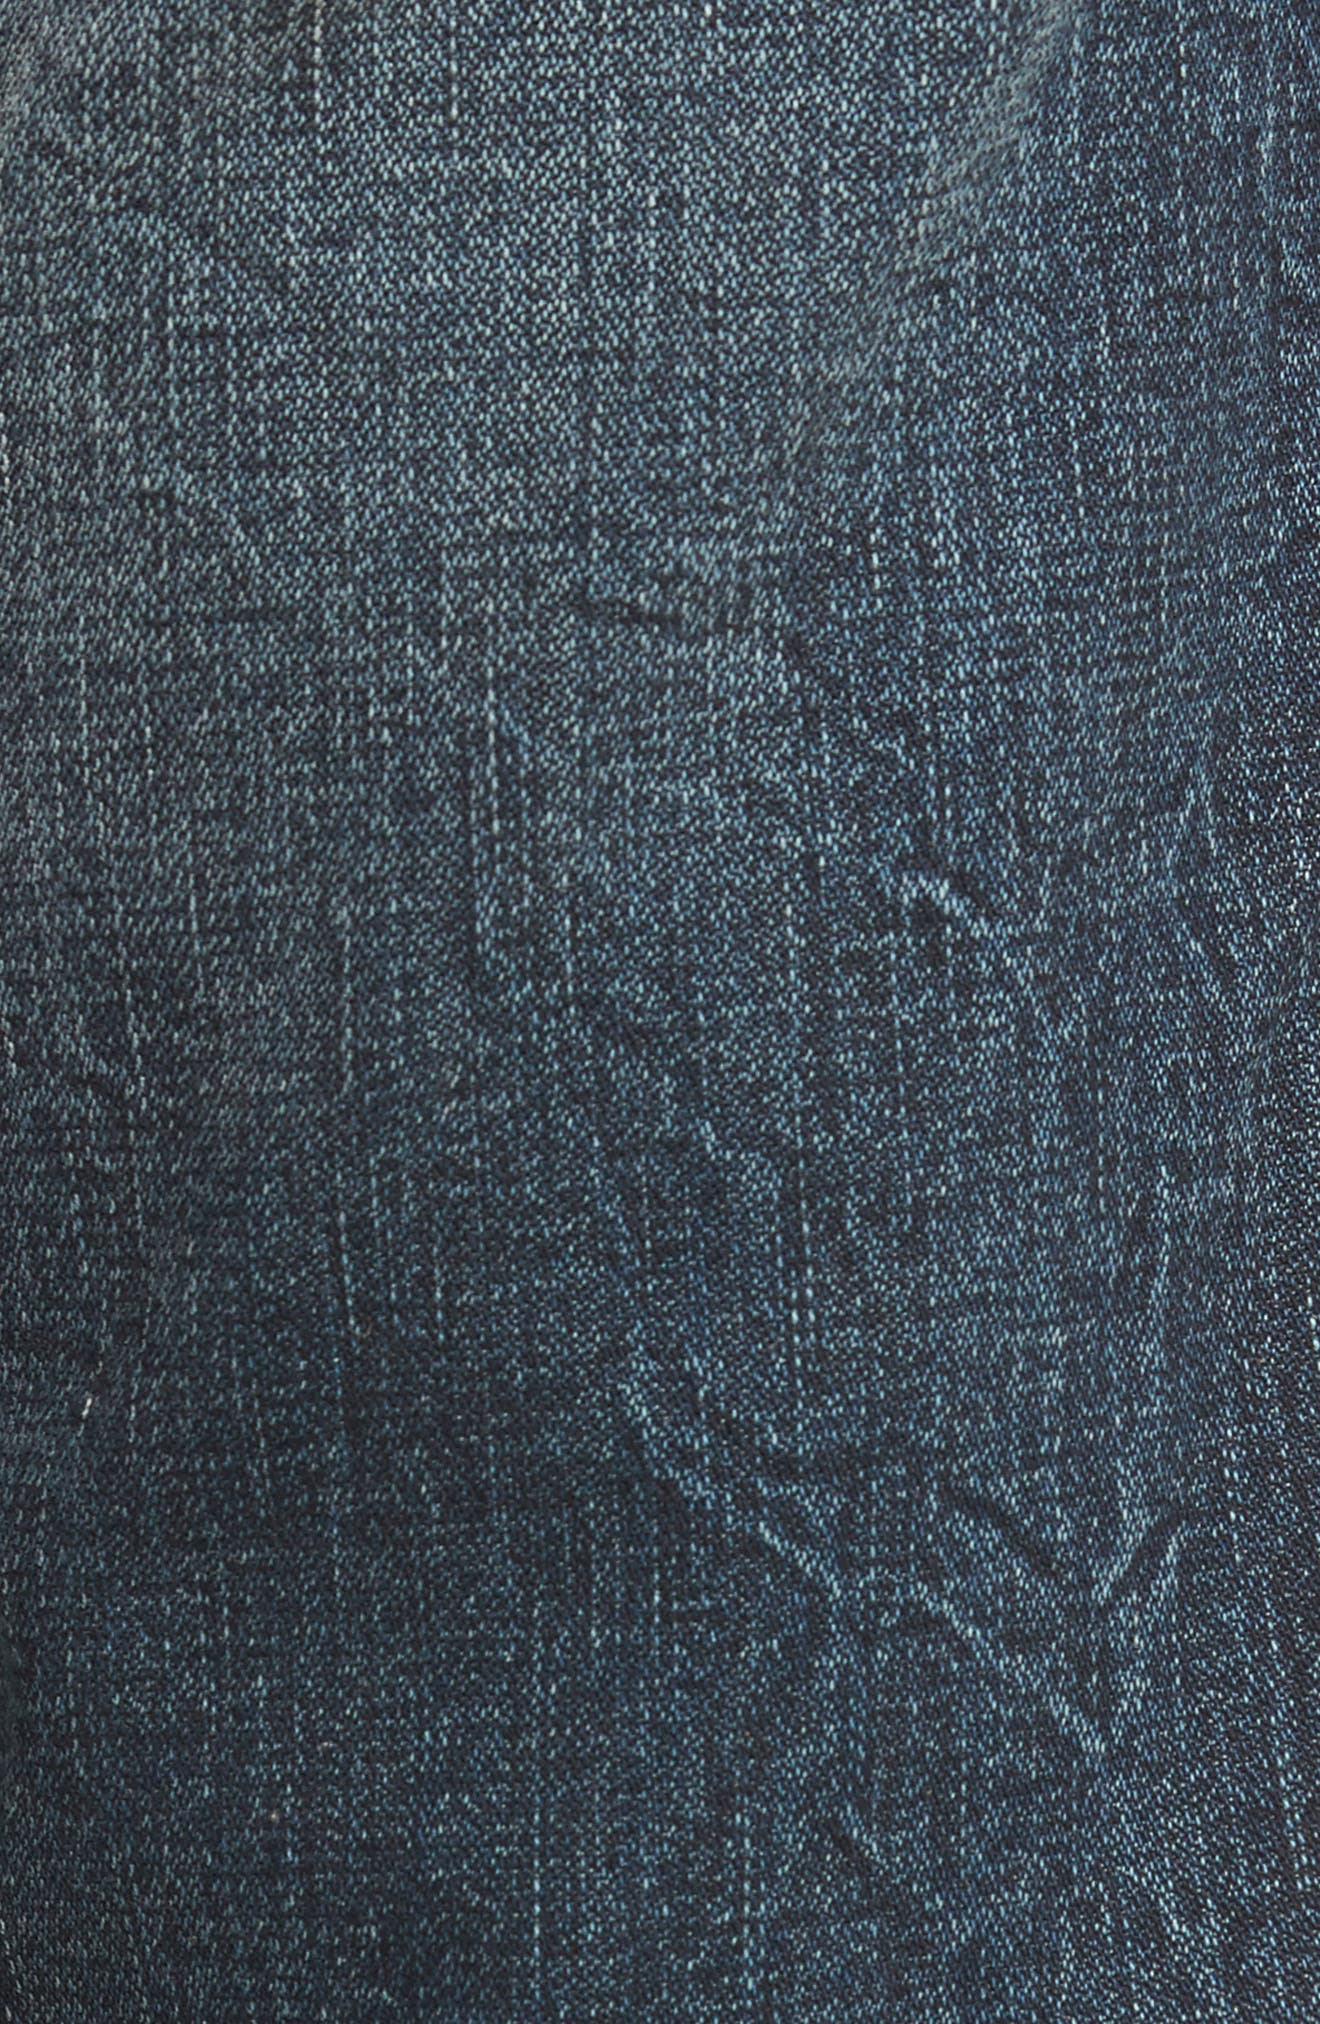 Geno Straight Fit Jeans,                             Alternate thumbnail 5, color,                             Patched Rider